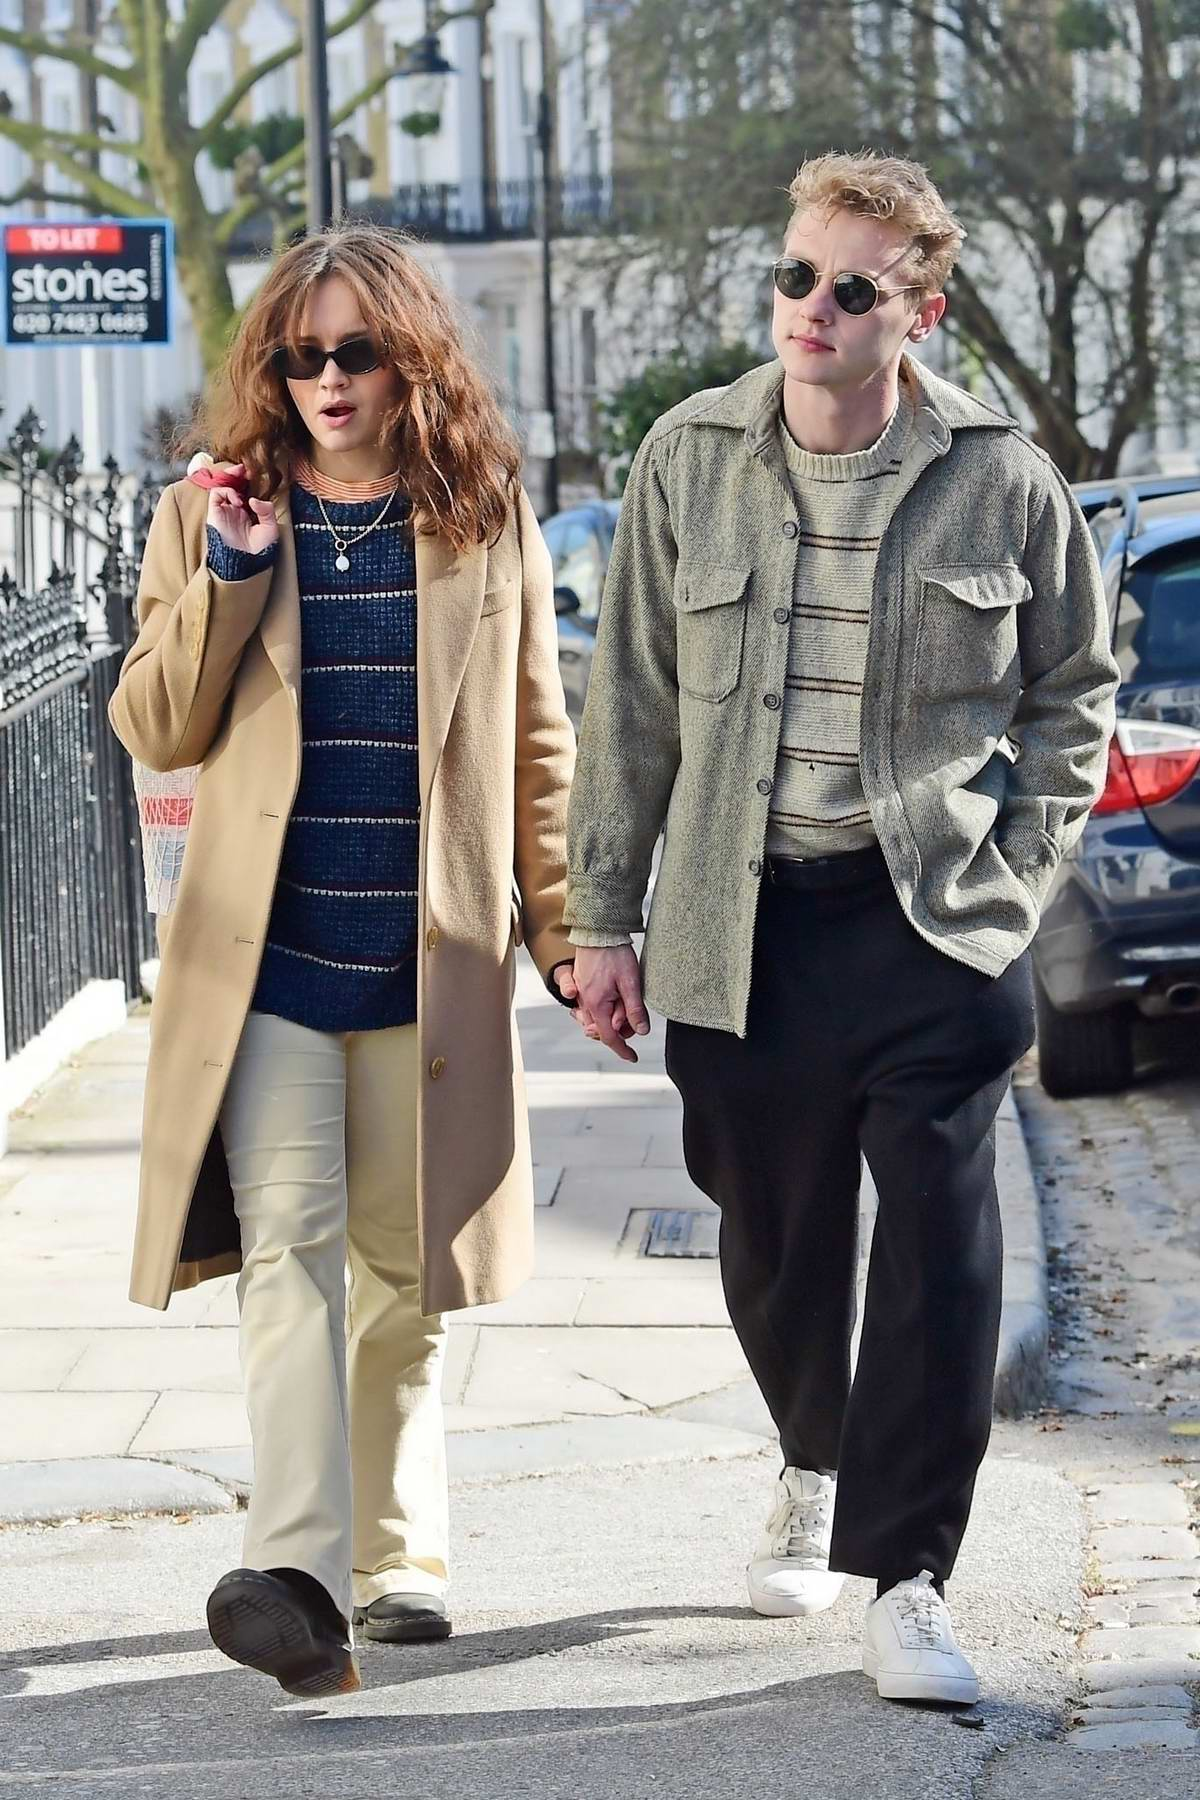 Olivia Cooke and boyfriend Ben Hardy go out for a romantic stroll in London, UK